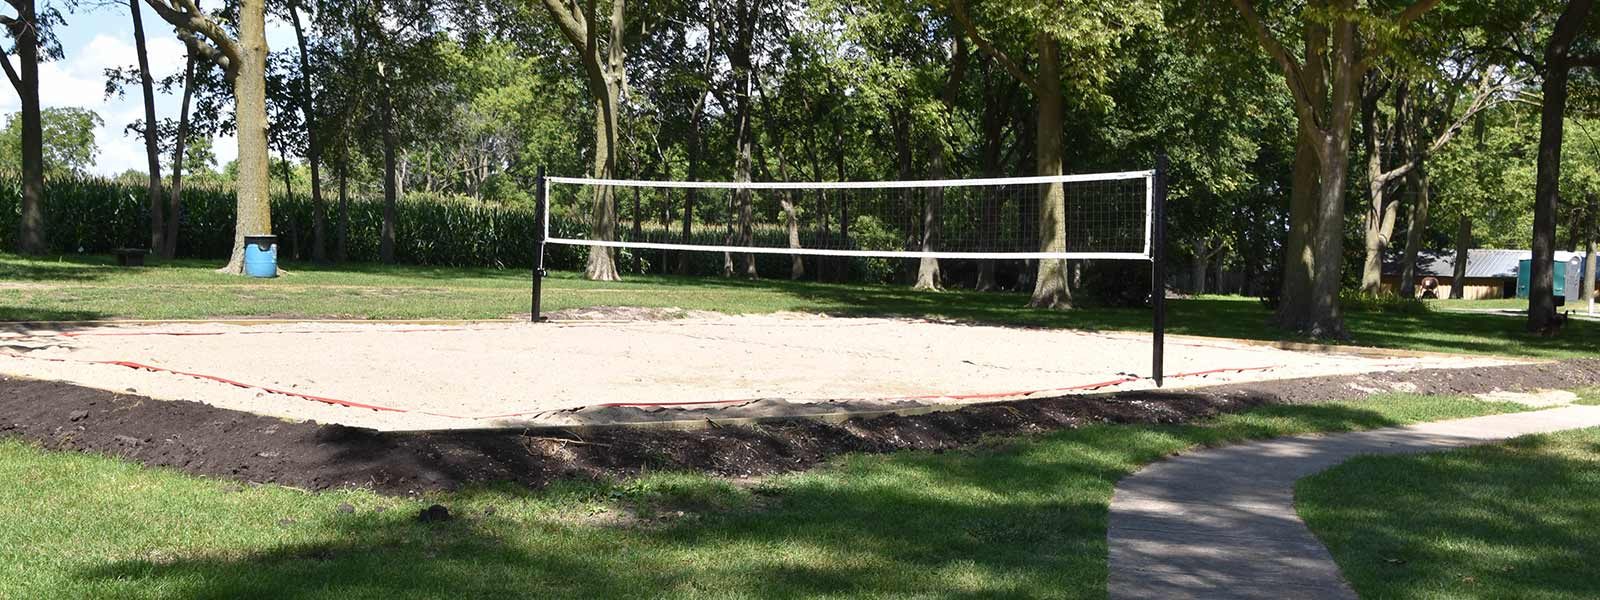 Edgewood VolleyBall Court